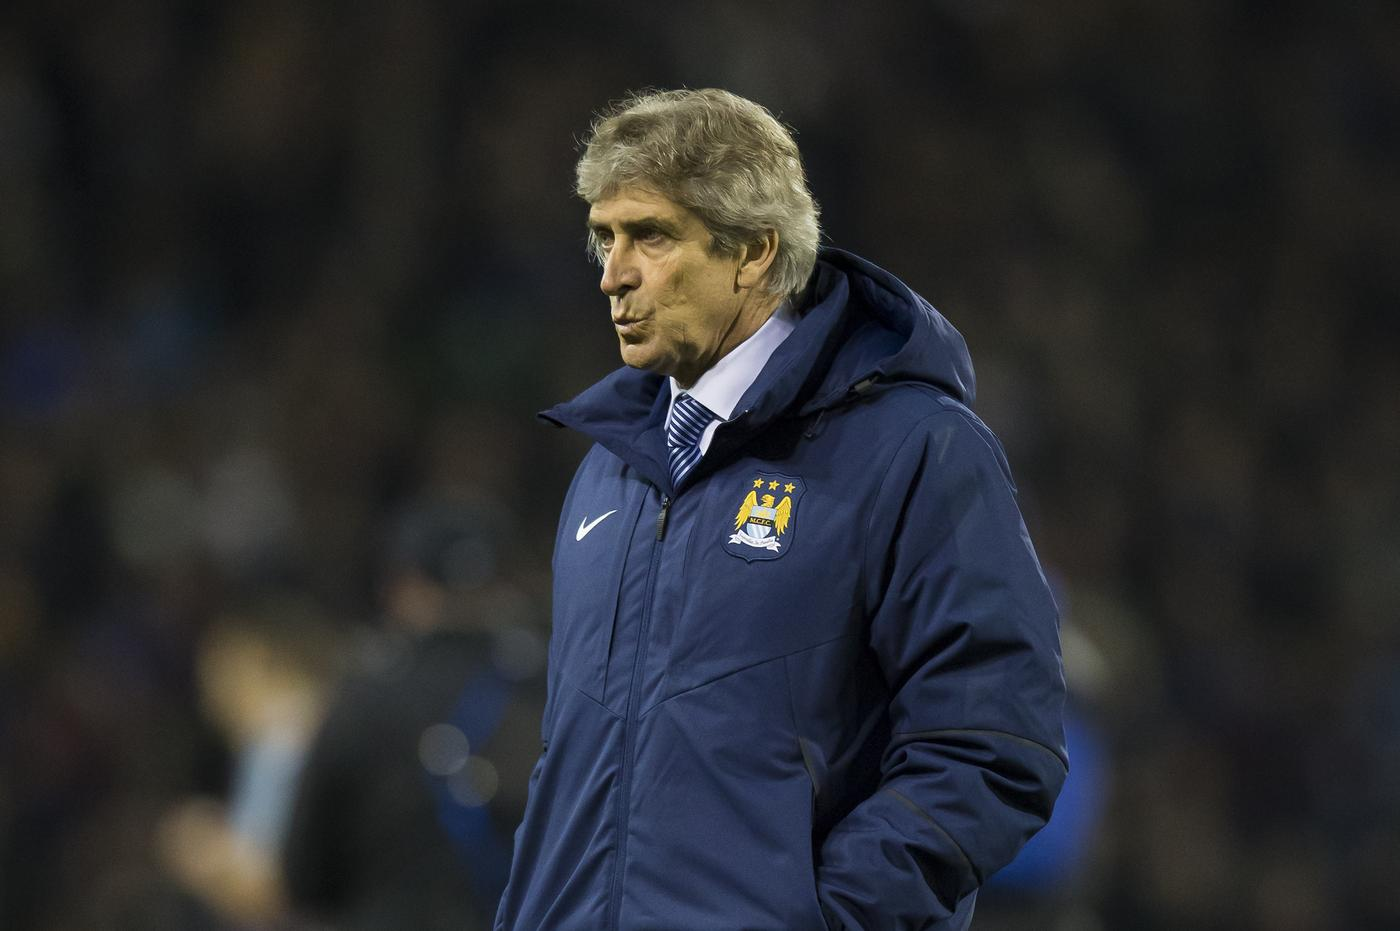 Manchester City and Manuel Pellegrini can ill-afford to sleepwalk to the end of a disappointing season